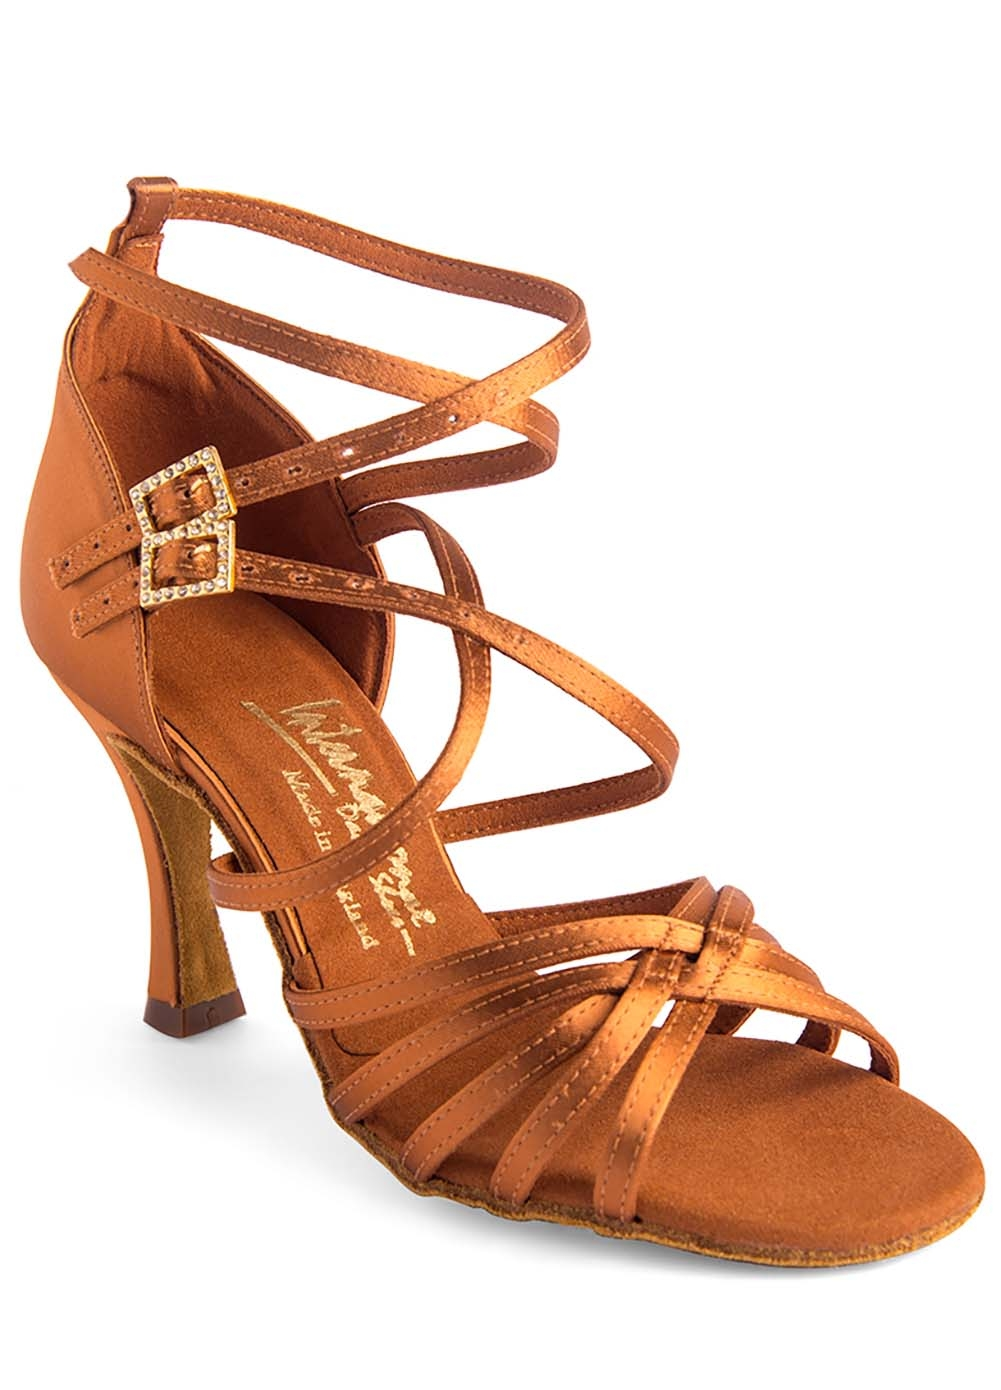 4f922de62 Women's Latin Shoes, International Dance Shoes, Emily, $155.00, from  VEdance, the very best in ballroom and Latin dance shoes and dancewear.